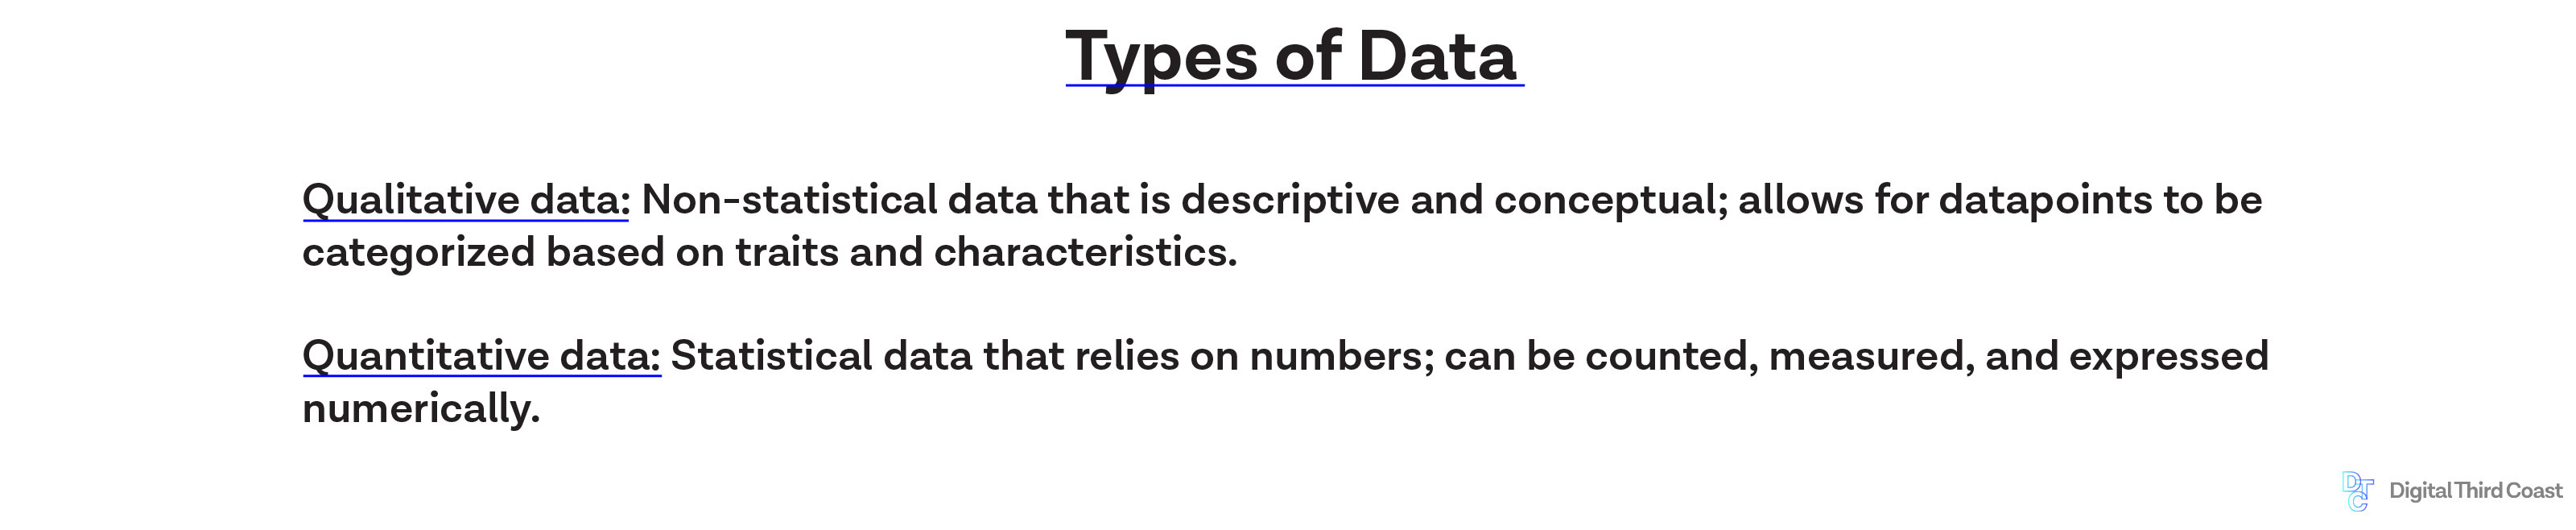 Graphic image highlighting text calling out two types of data: quantitative and qualitative